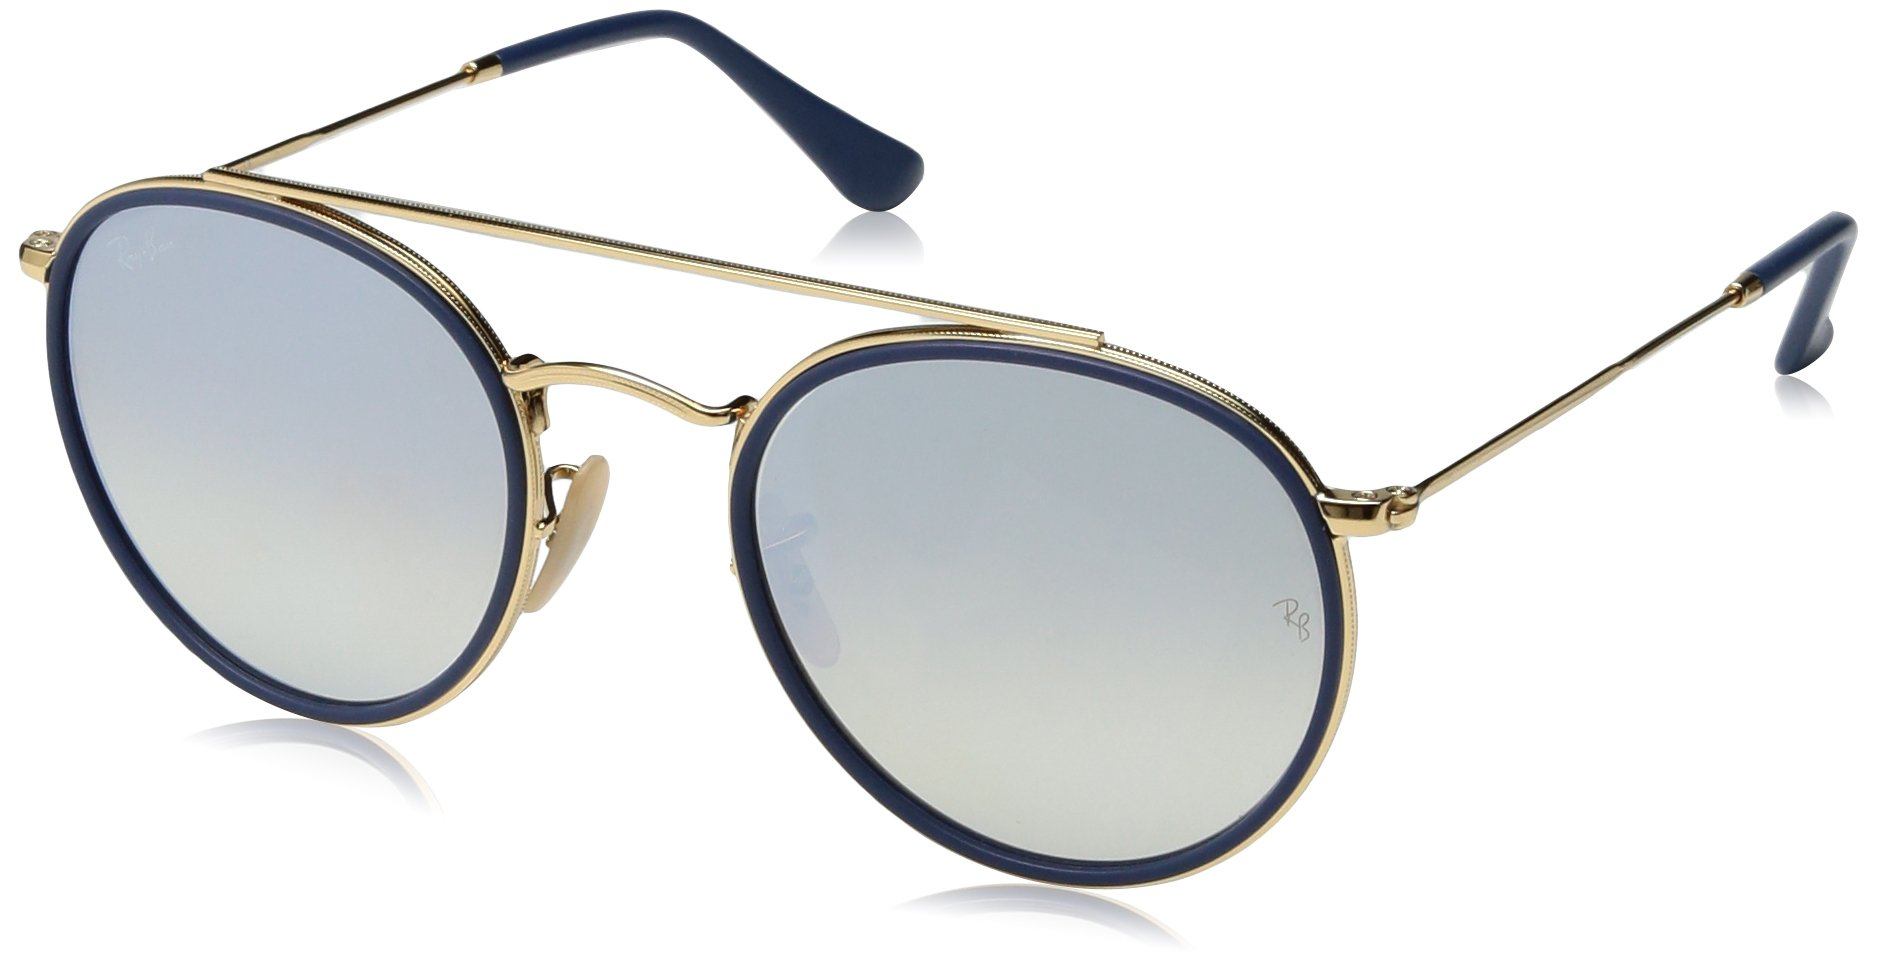 Ray-Ban Metal Unisex Non-Polarized Iridium Round Sunglasses, Gold, 51.4 mm by Ray-Ban